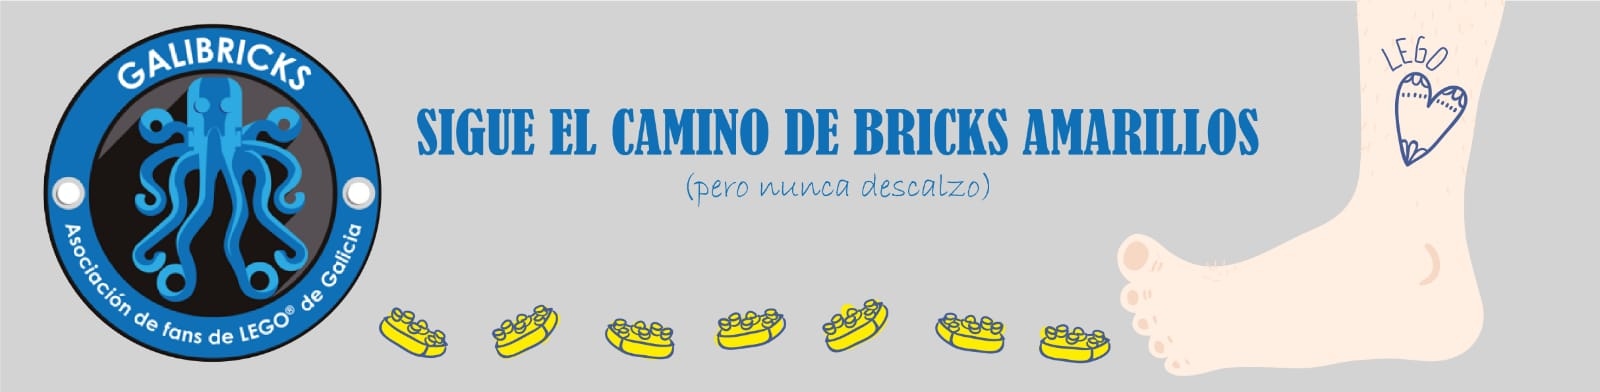 GALIBRICKS